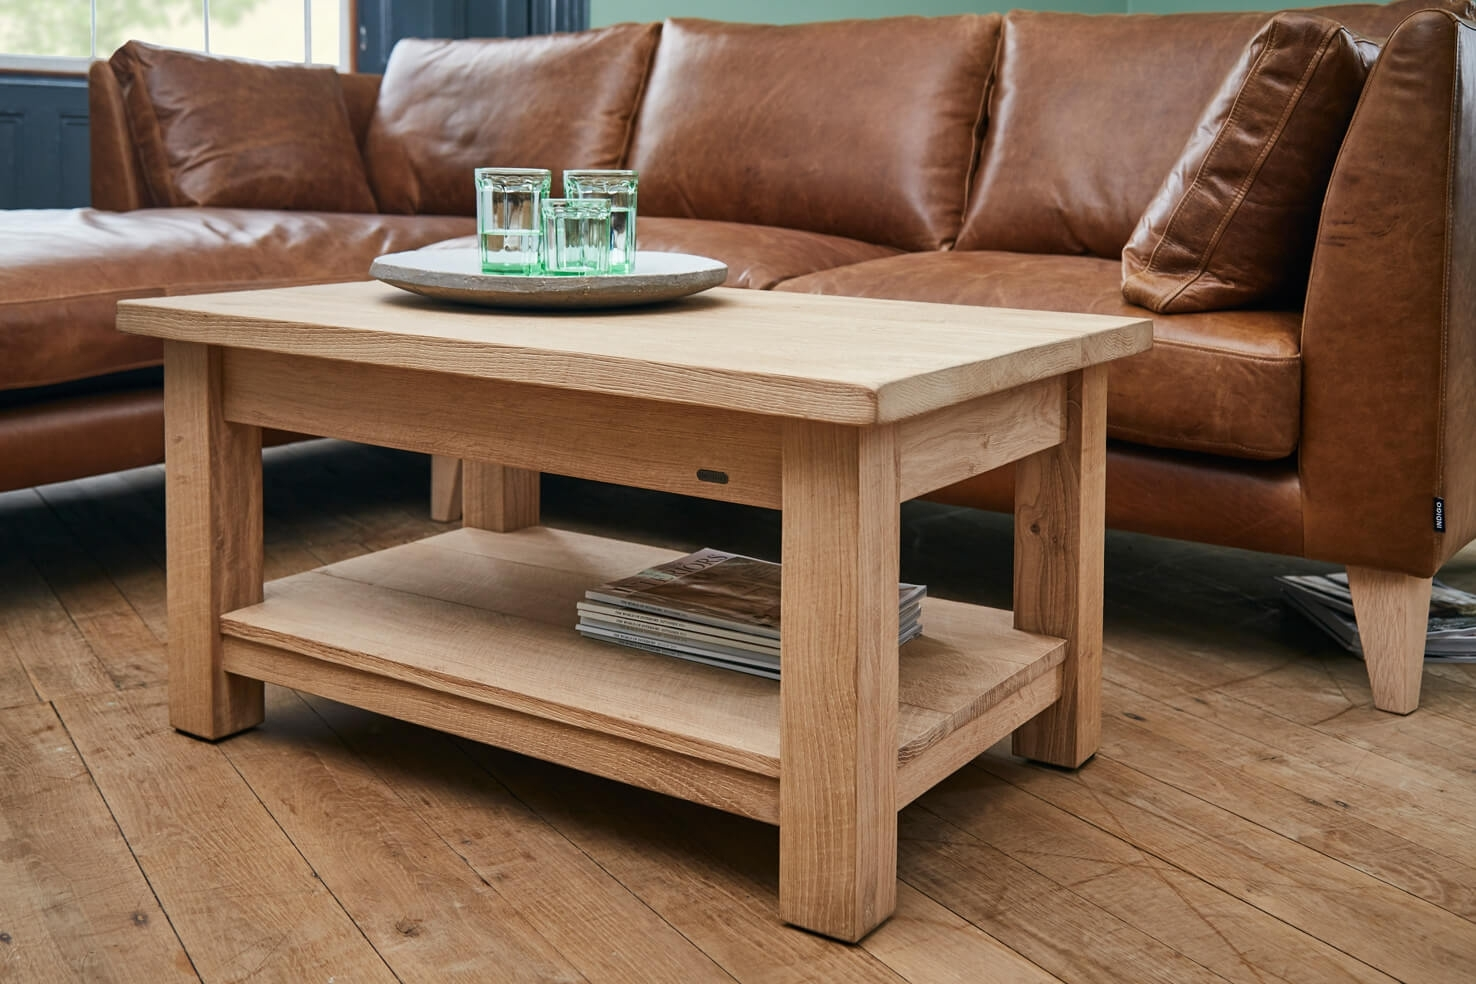 Rustic Wood Coffee Tables Handmade From Solid Oak Planks | Indigo regarding Mill Large Leather Coffee Tables (Image 23 of 30)